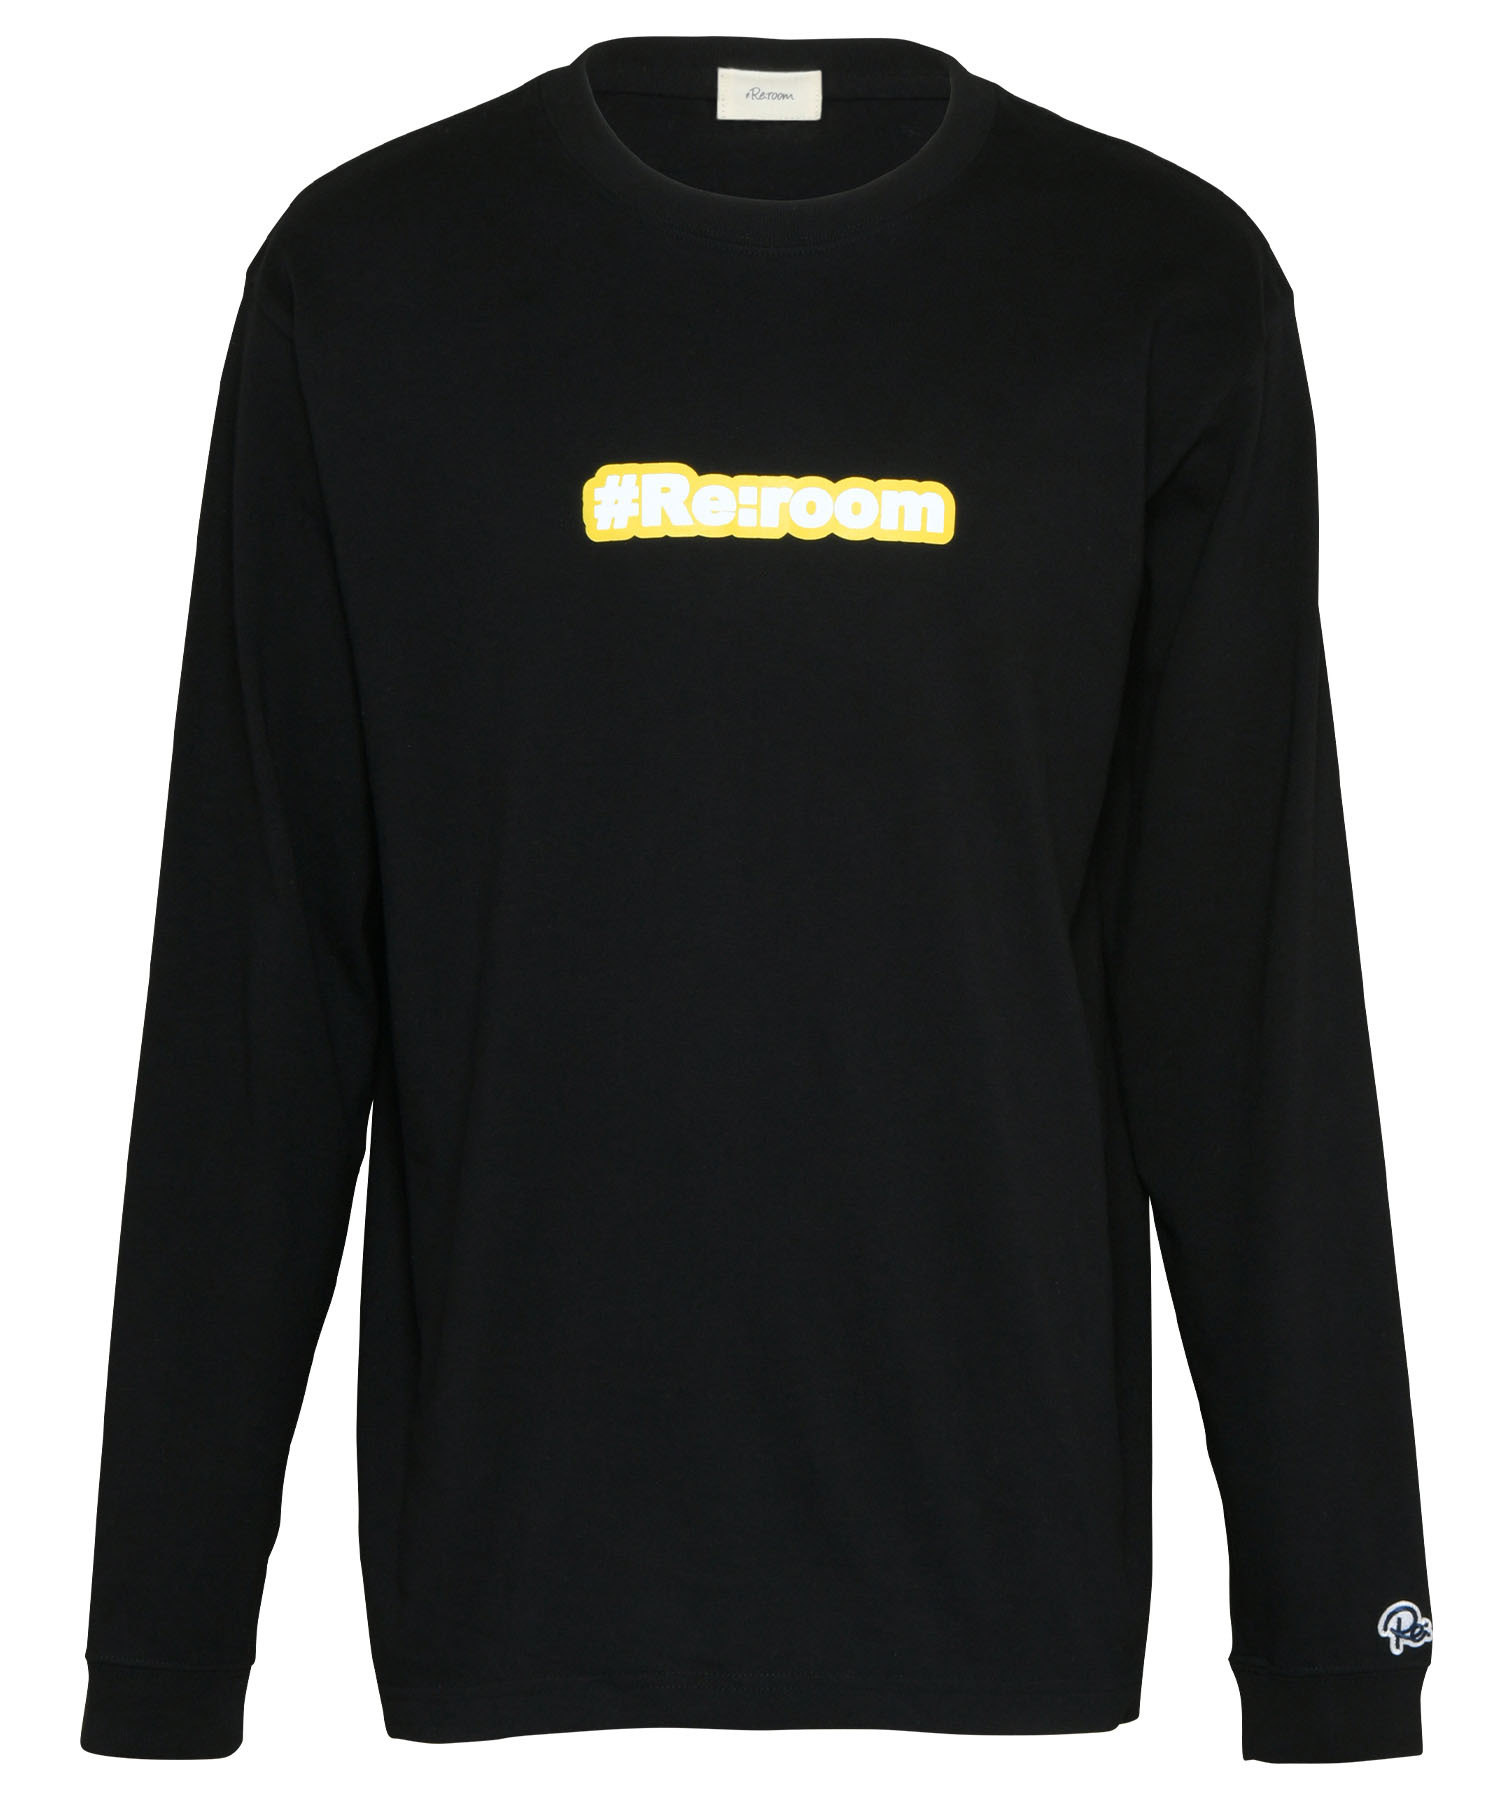 LOGO REFLECTOR PRINT LONG SLEEVE[REC449]